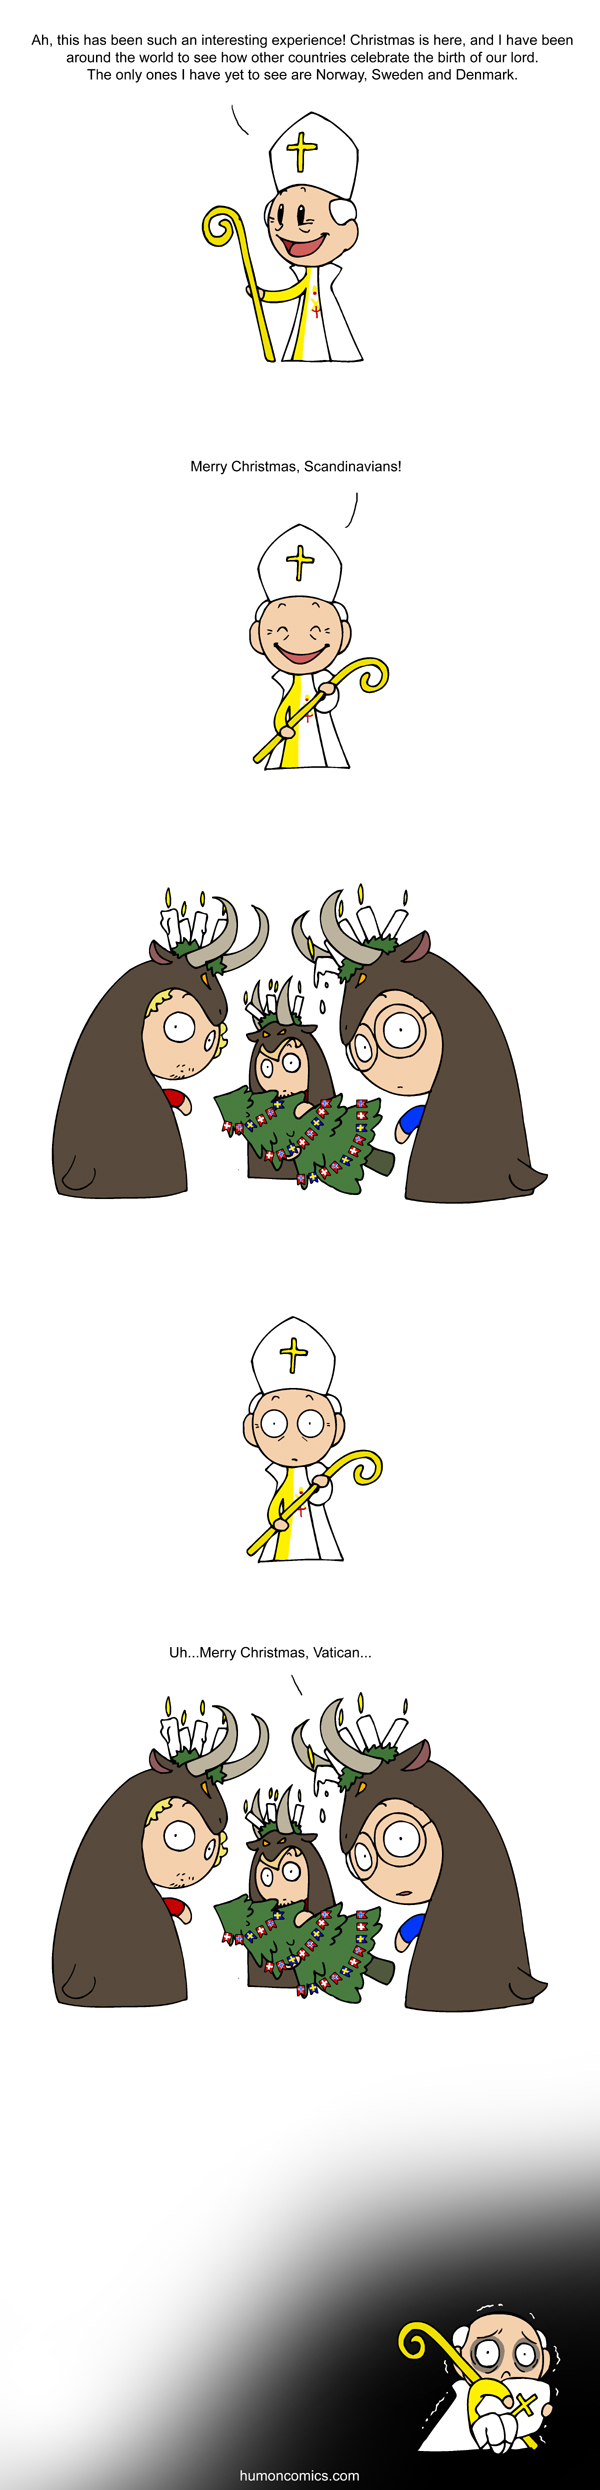 Christmas Traditions satwcomic.com